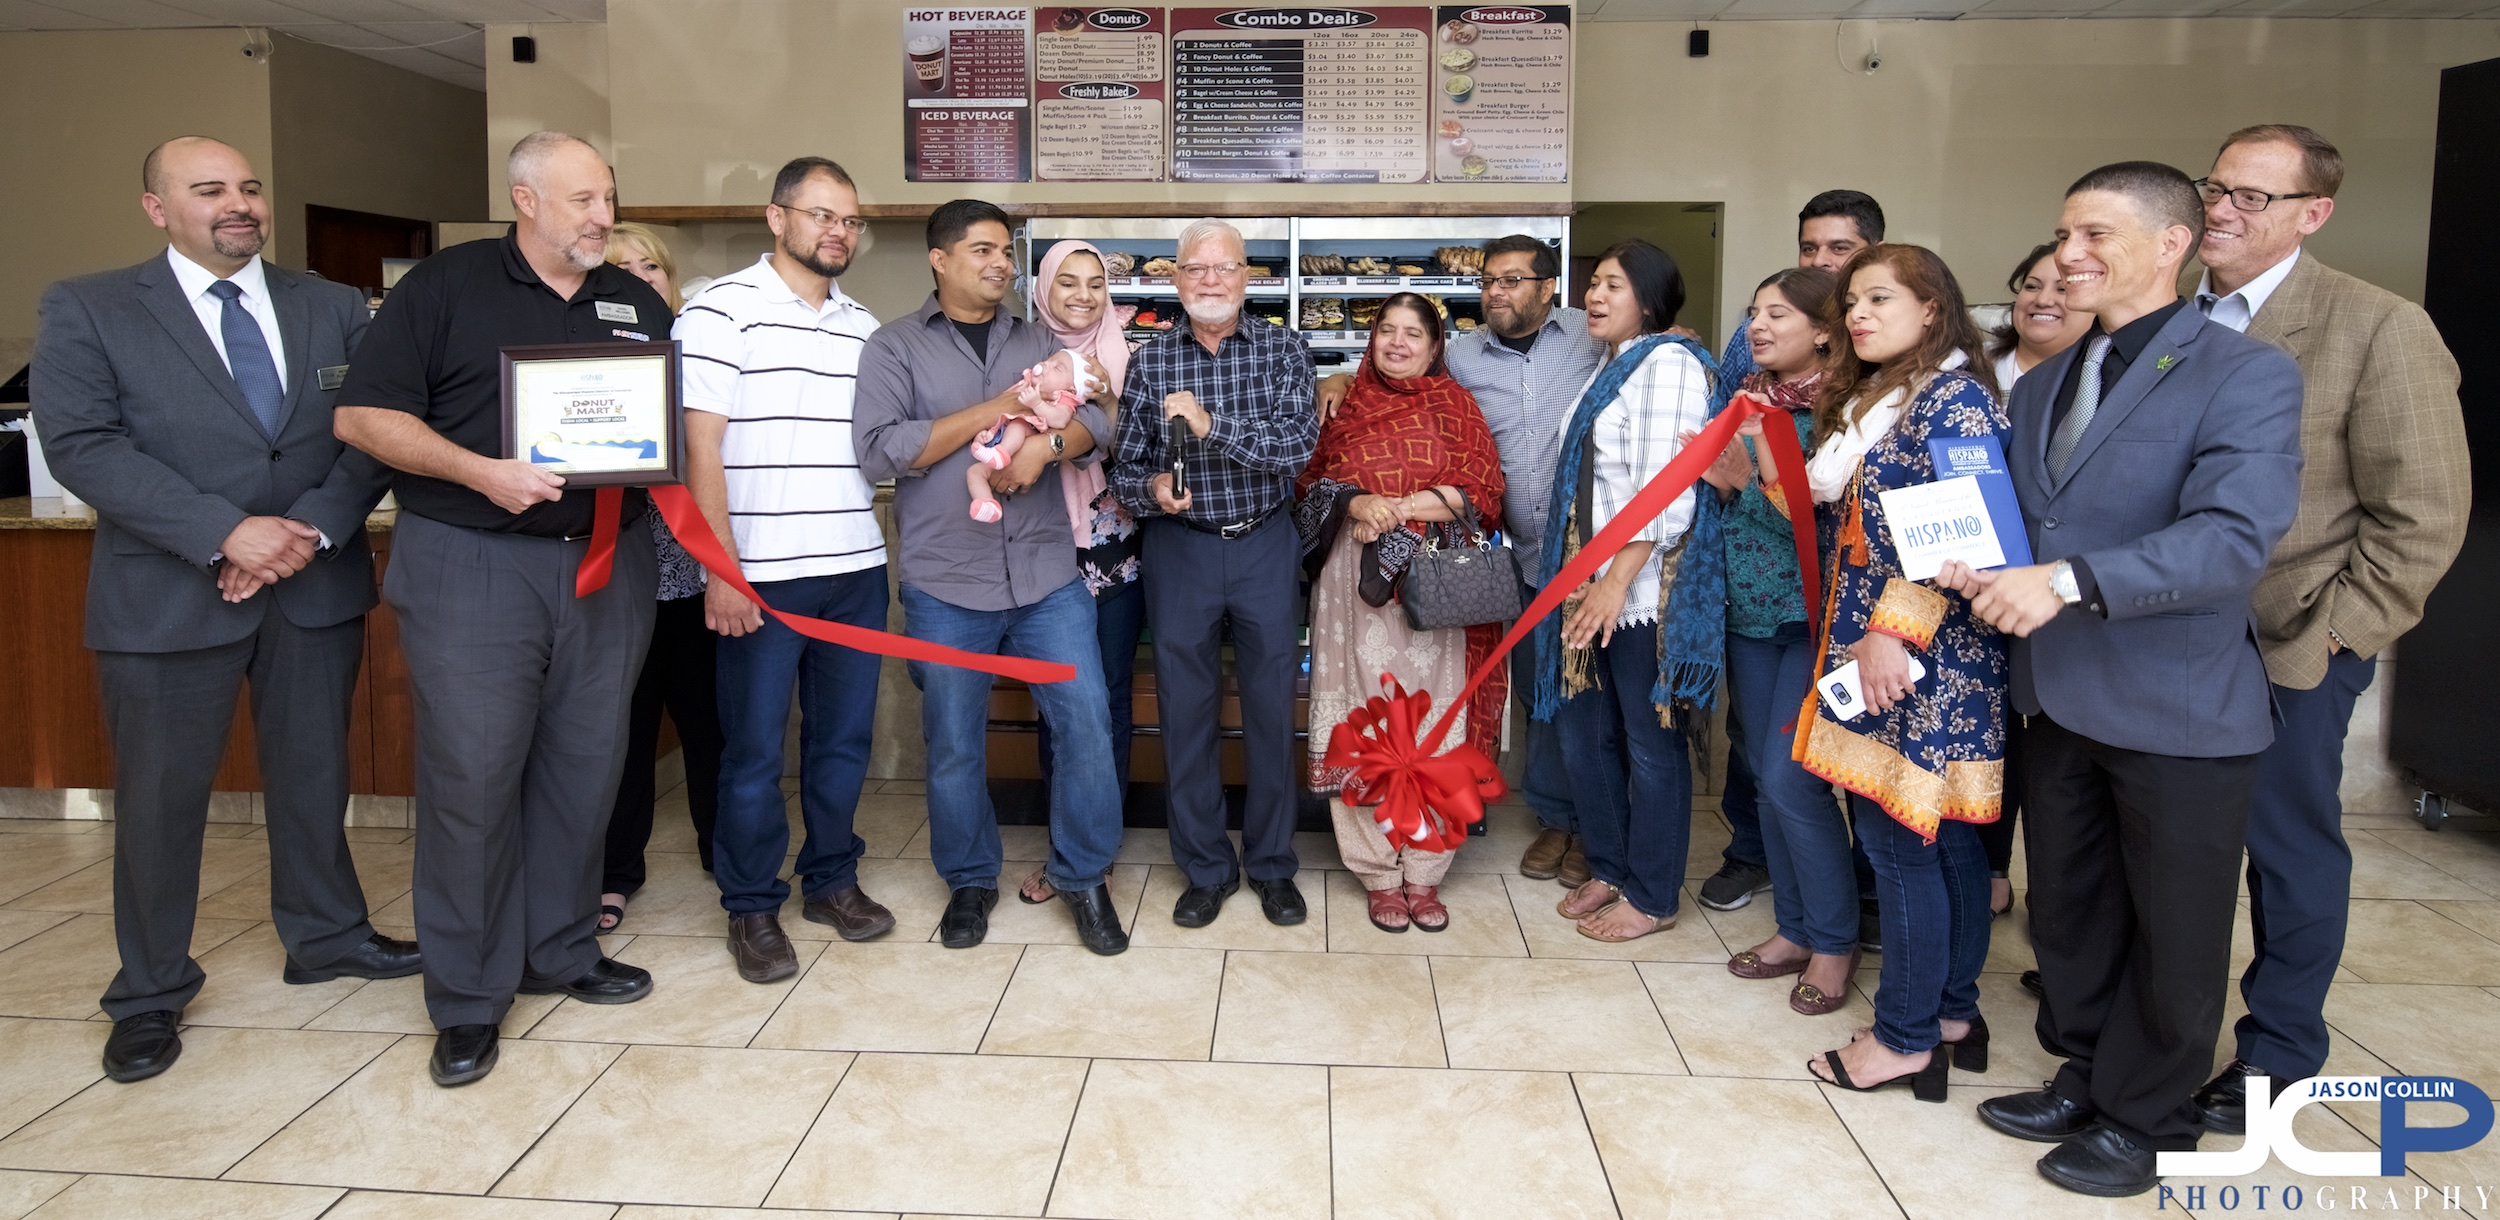 The whole family came for the ribbon cutting at Donut Mart on San Mateo Blvd in Albuquerque, New Mexico